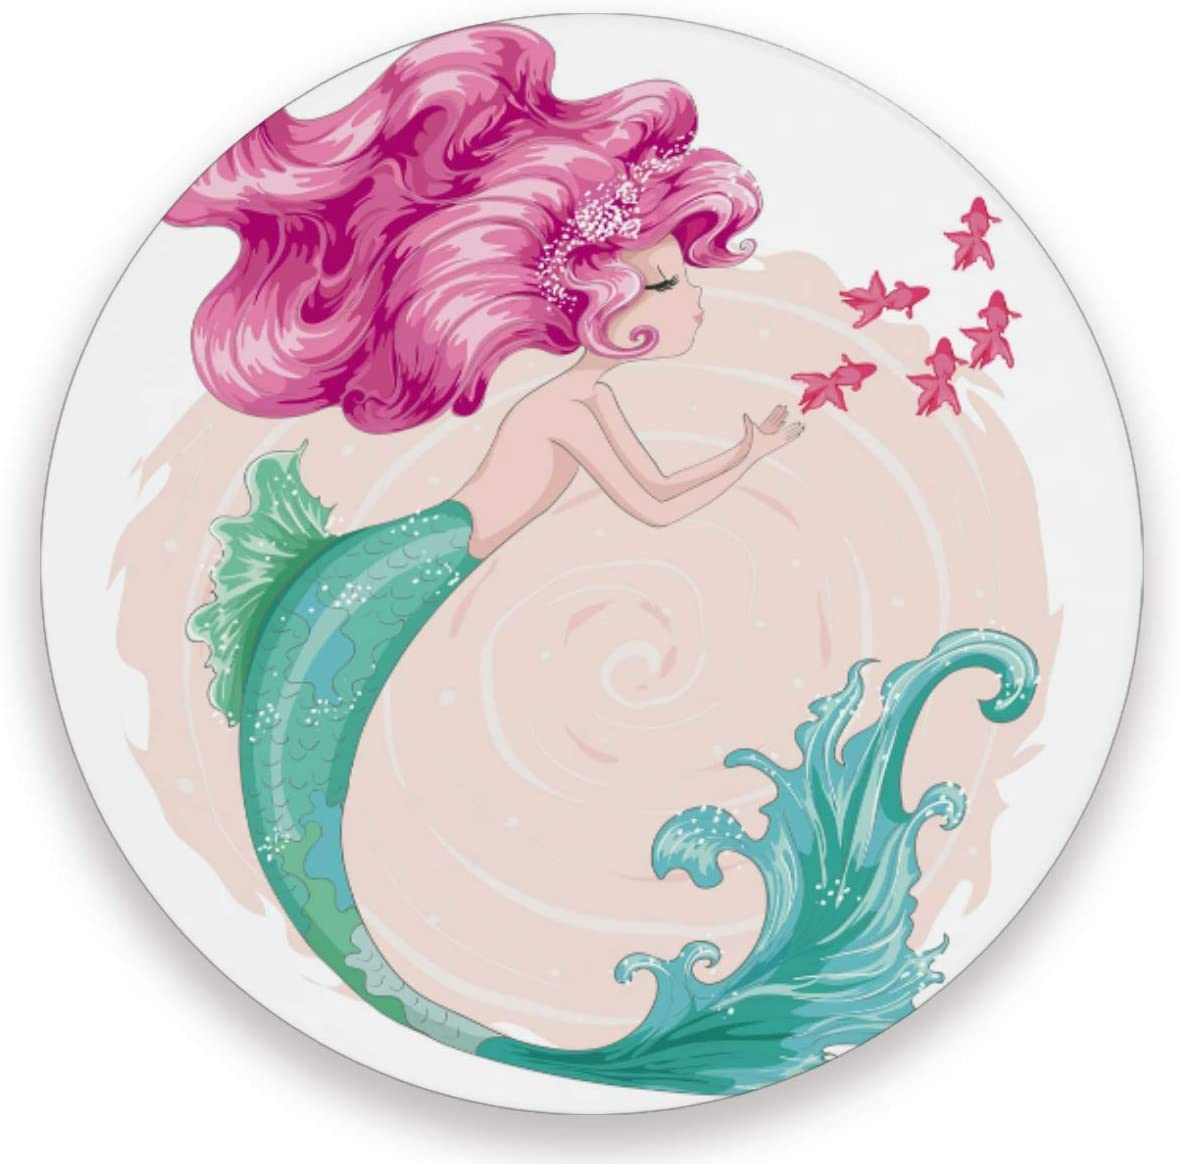 Olinyou Watercolor Mermaid Fish Coasters for Drinks Set of 4 Absorbent Ceramic Stone Round Coaster with Cork Base